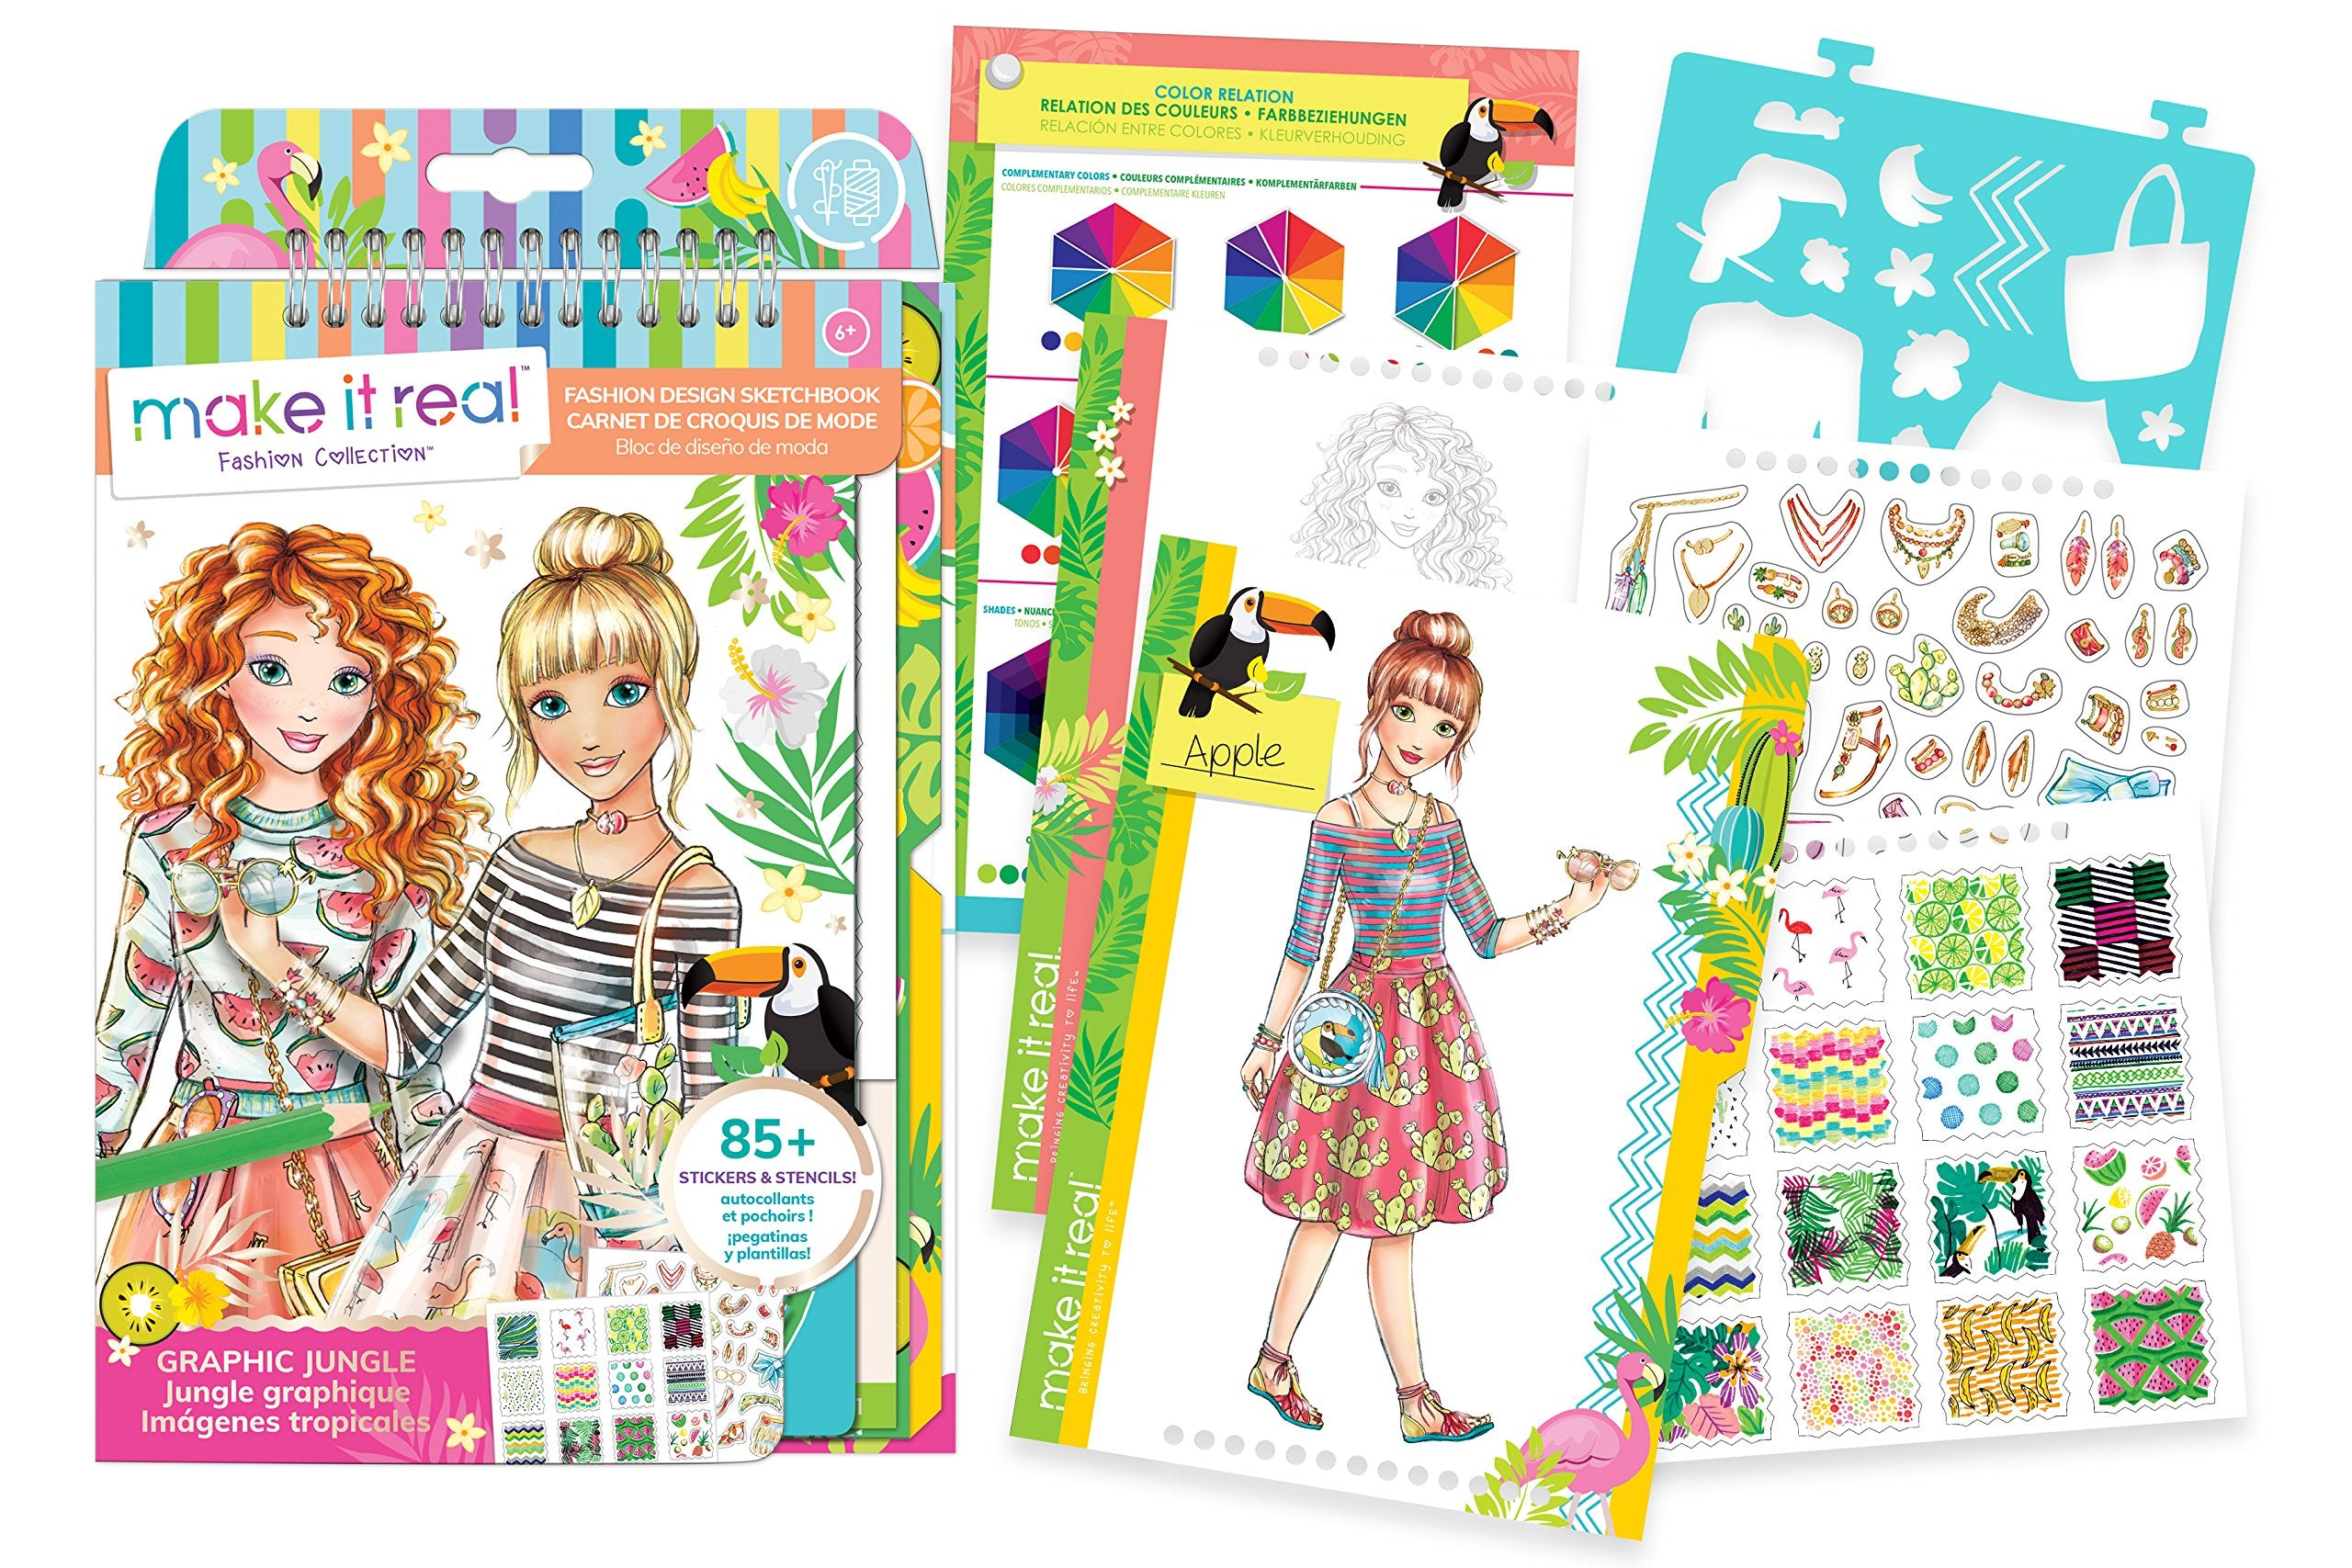 Make It Real 3201 Fashion Design Sketchbook - Graphic Jungle Coloring Book  for Girls